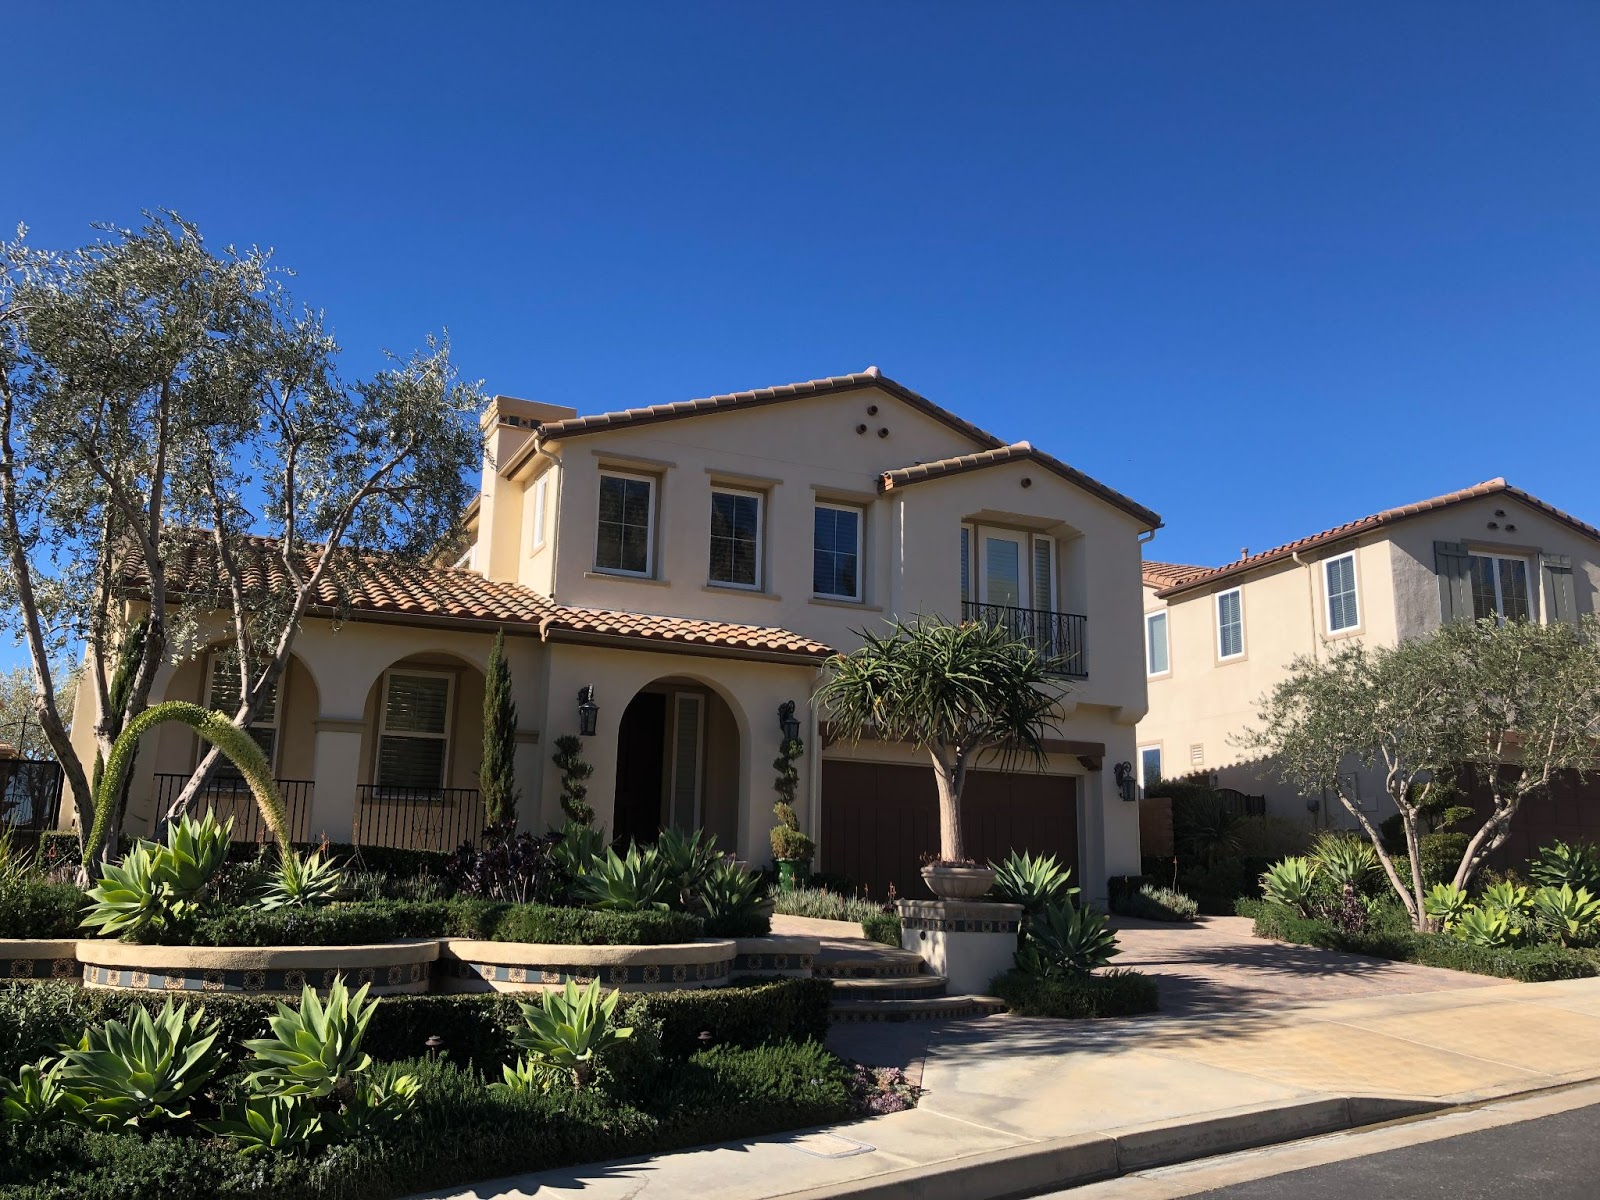 proper plant placement in landscaping in front of a southern California home